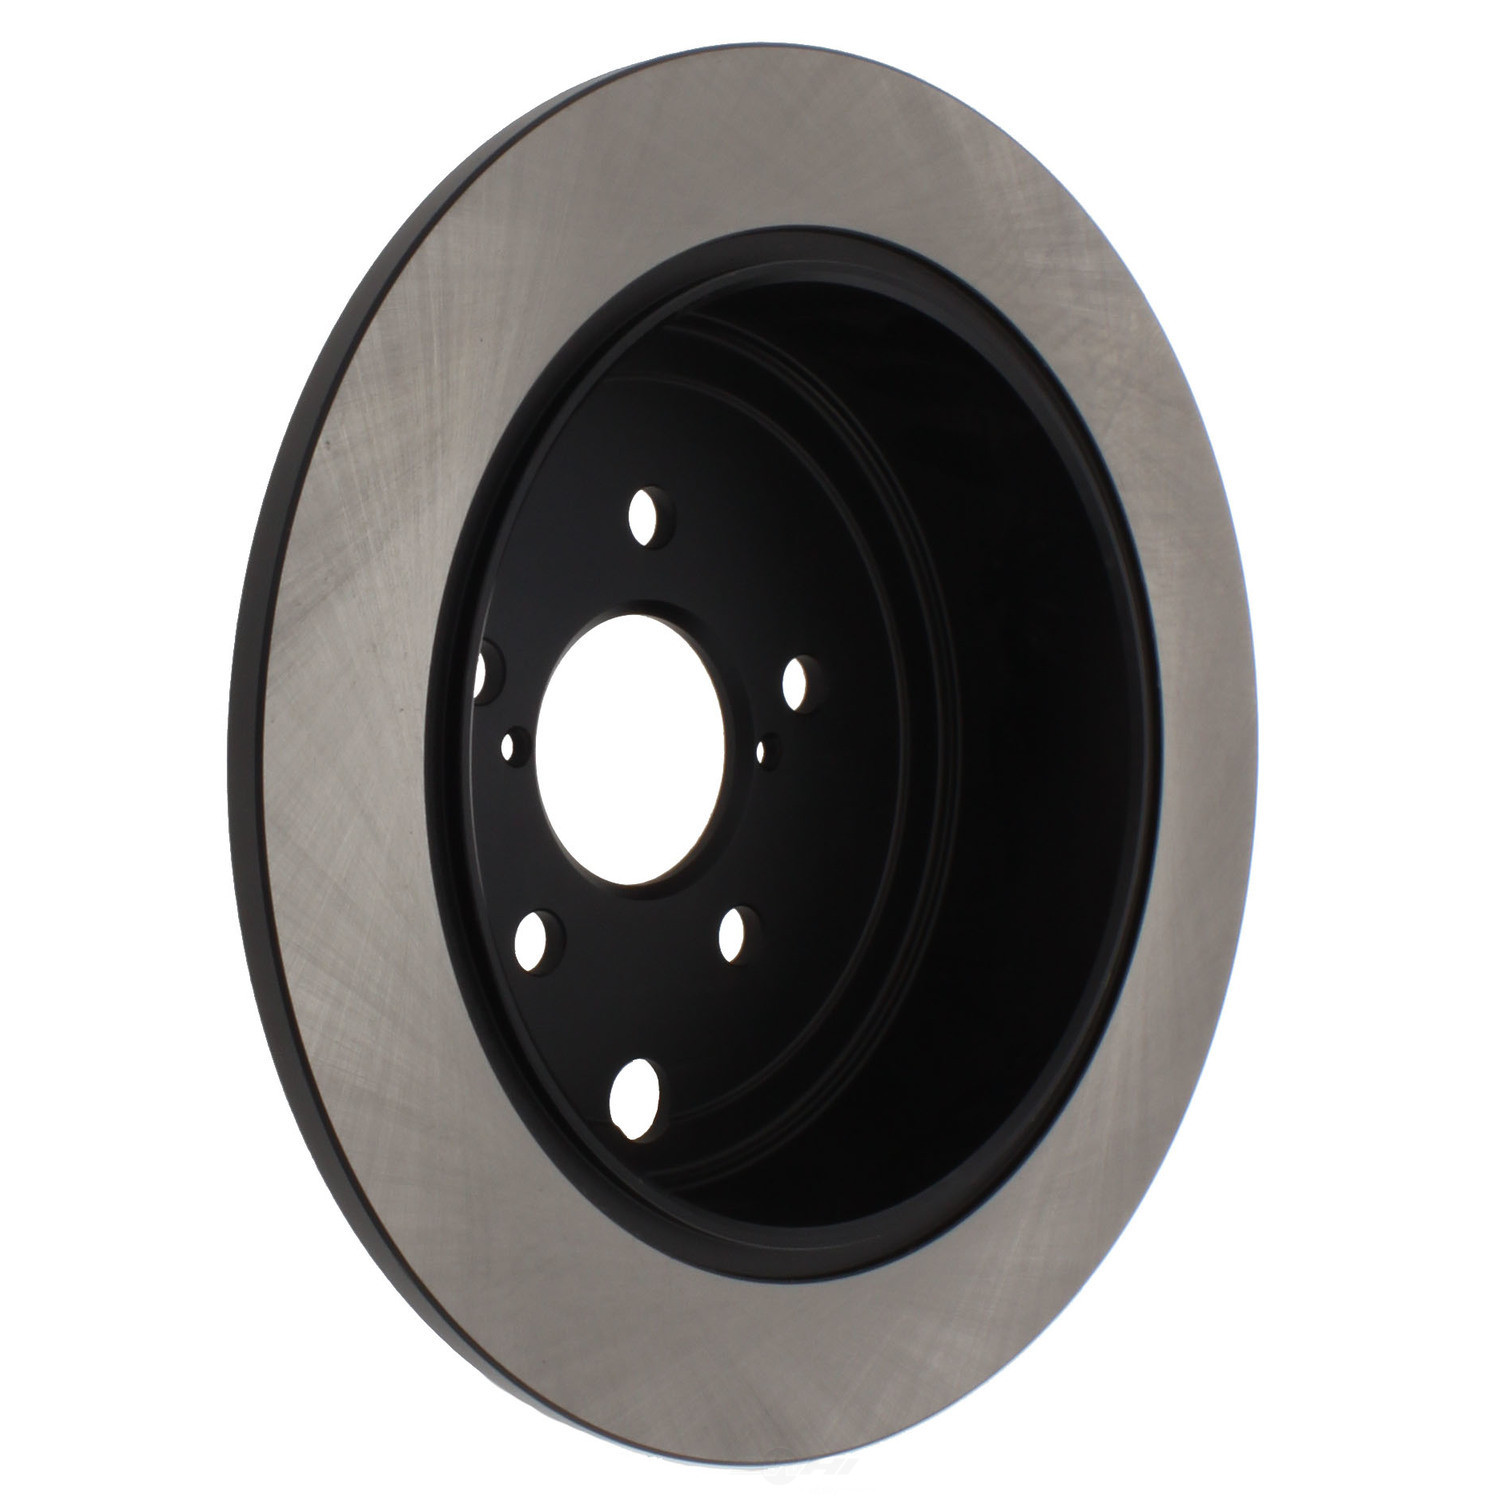 STOPTECH - StopTech Cryo-Treated Disc Brake Rotors (Rear) - SOH 120.47029CRY